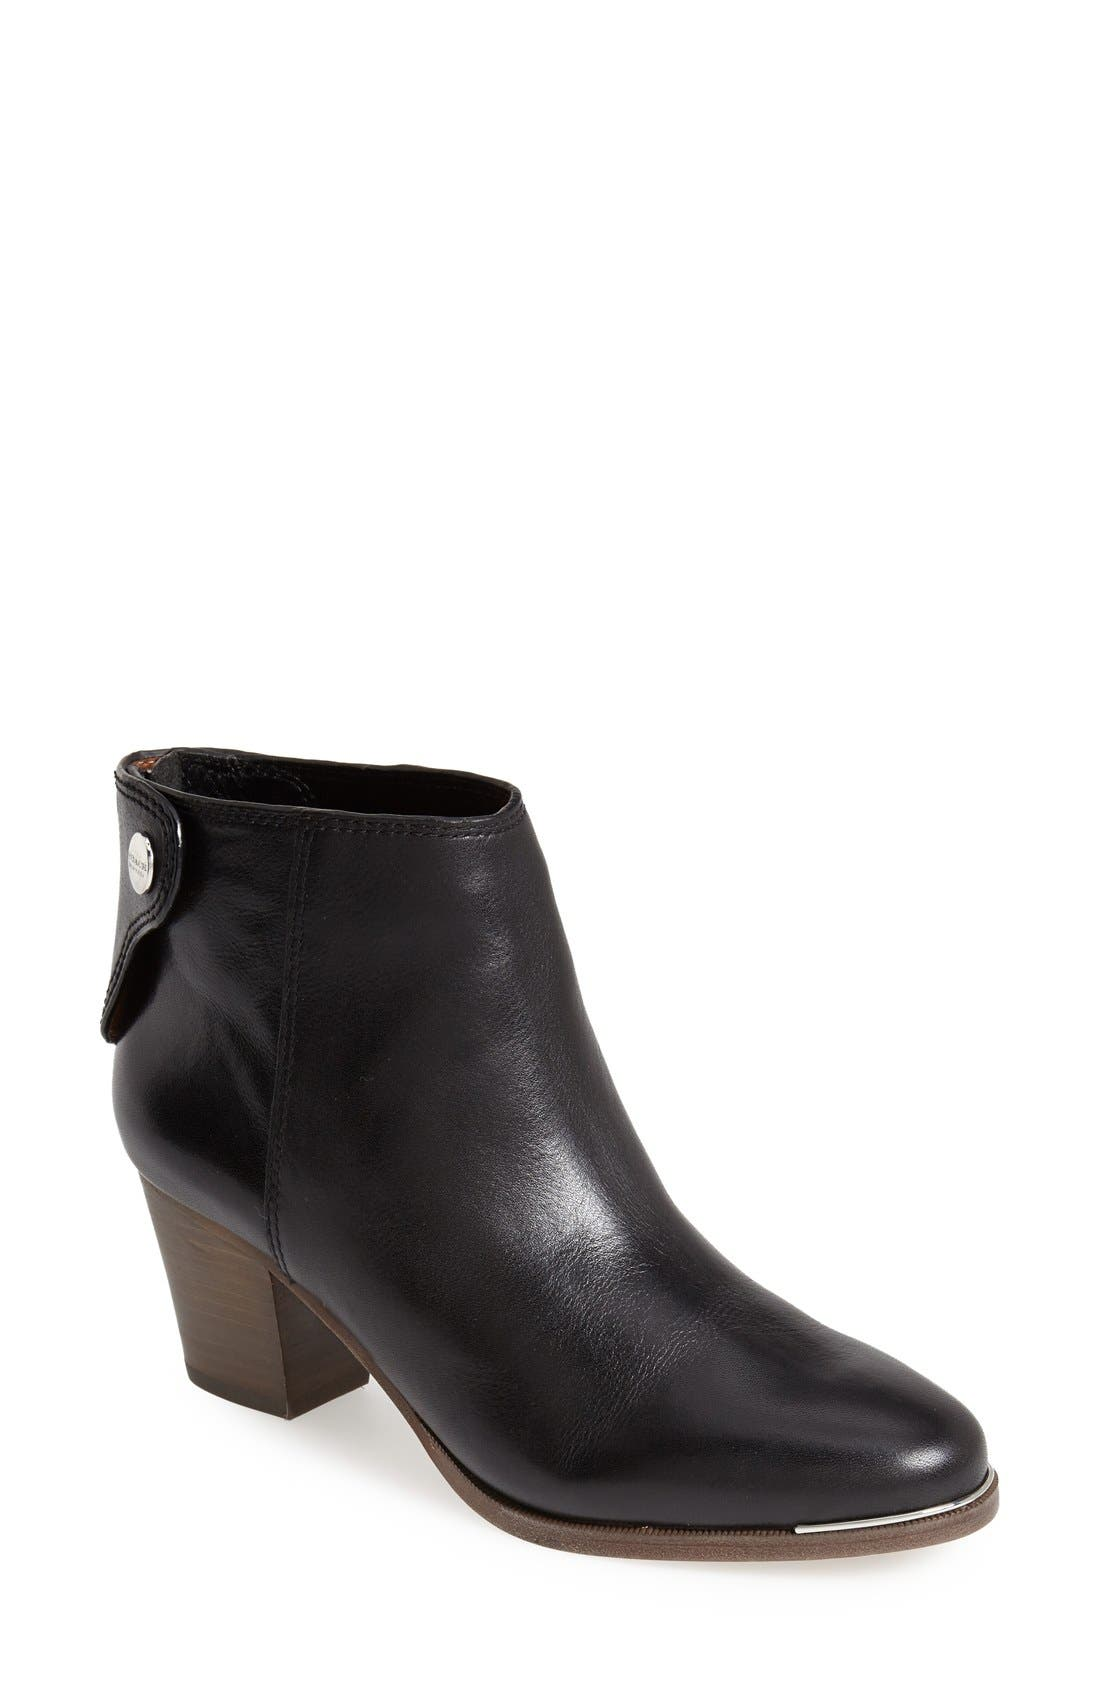 Main Image - COACH 'Waldorf' Leather Bootie (Women)